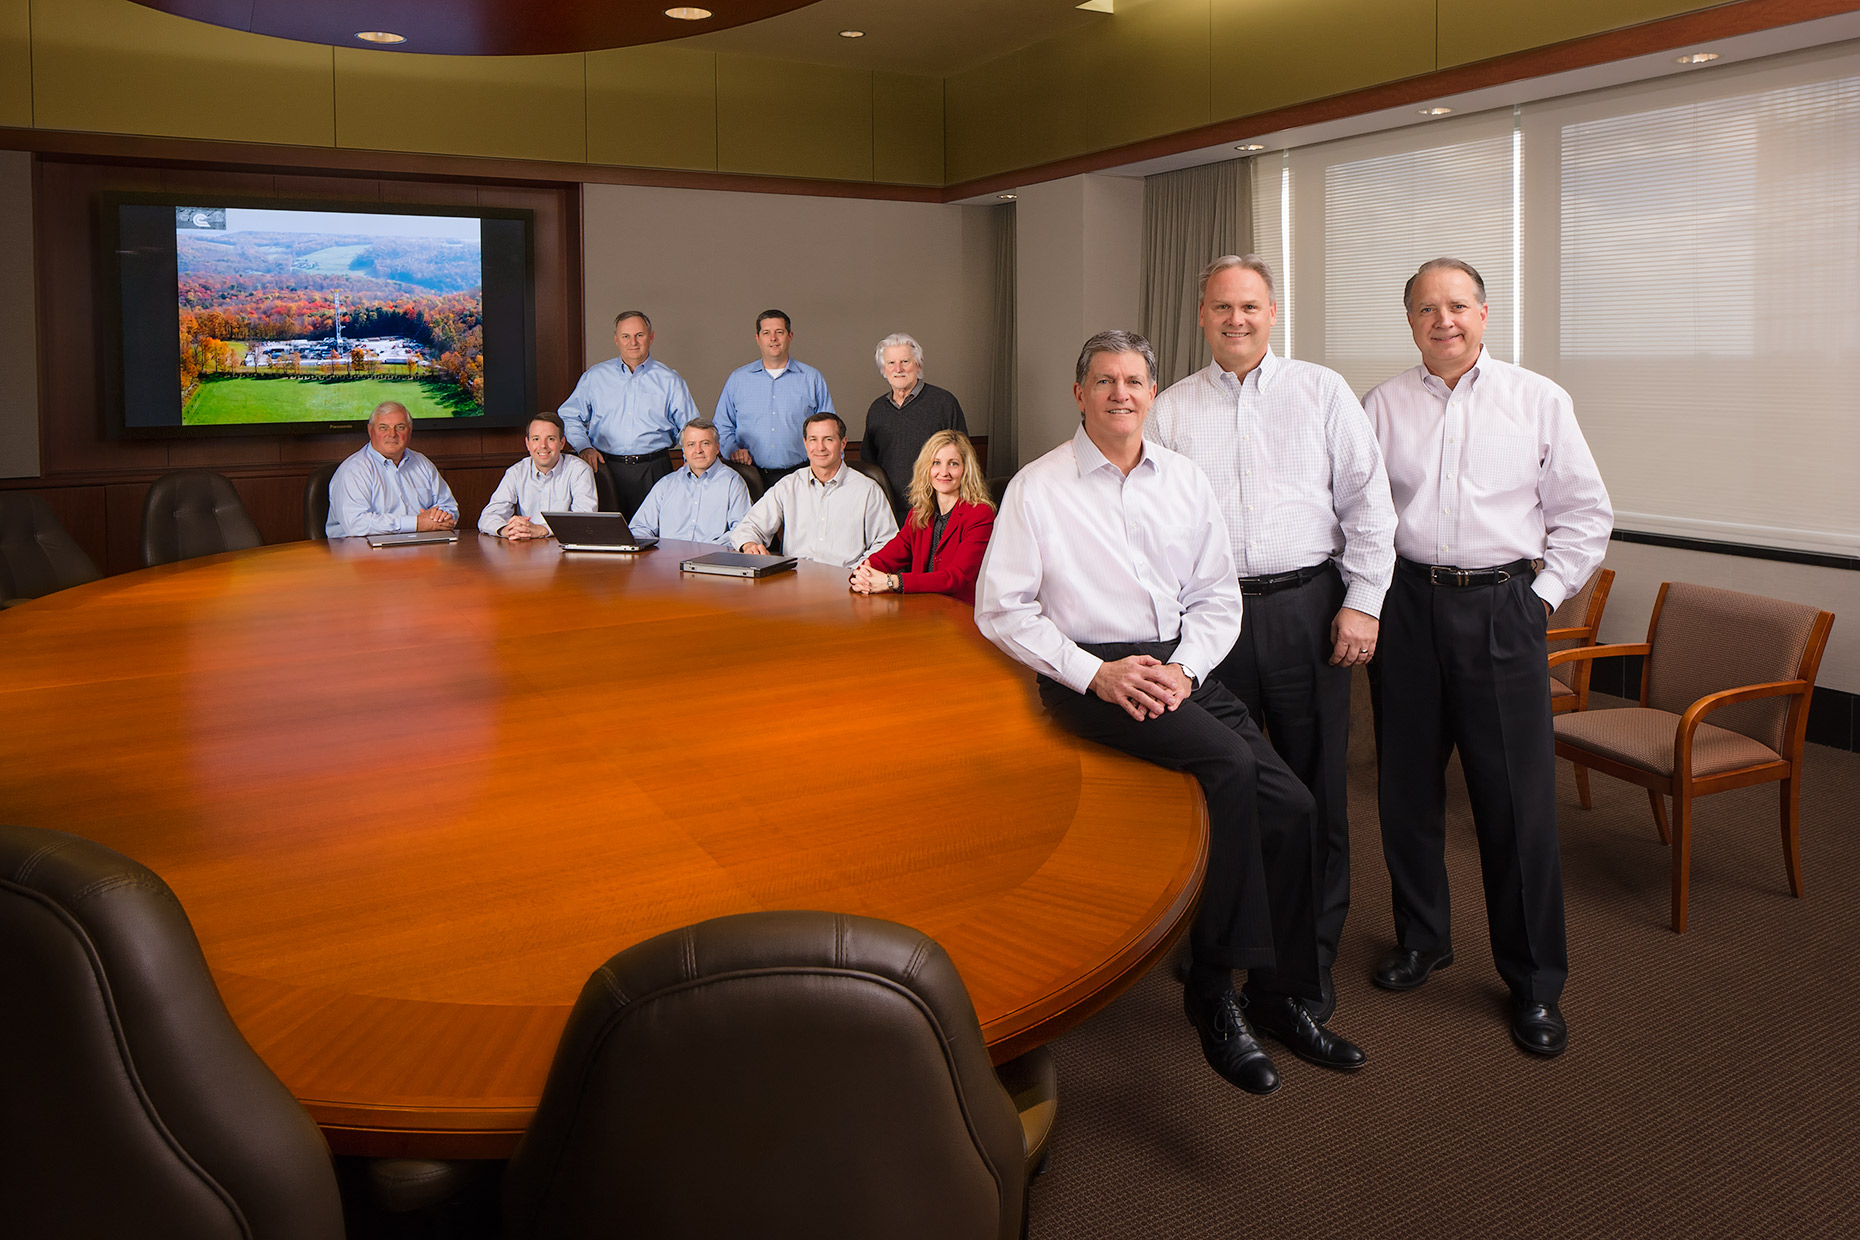 Cabot Oil & Gas Executive Team